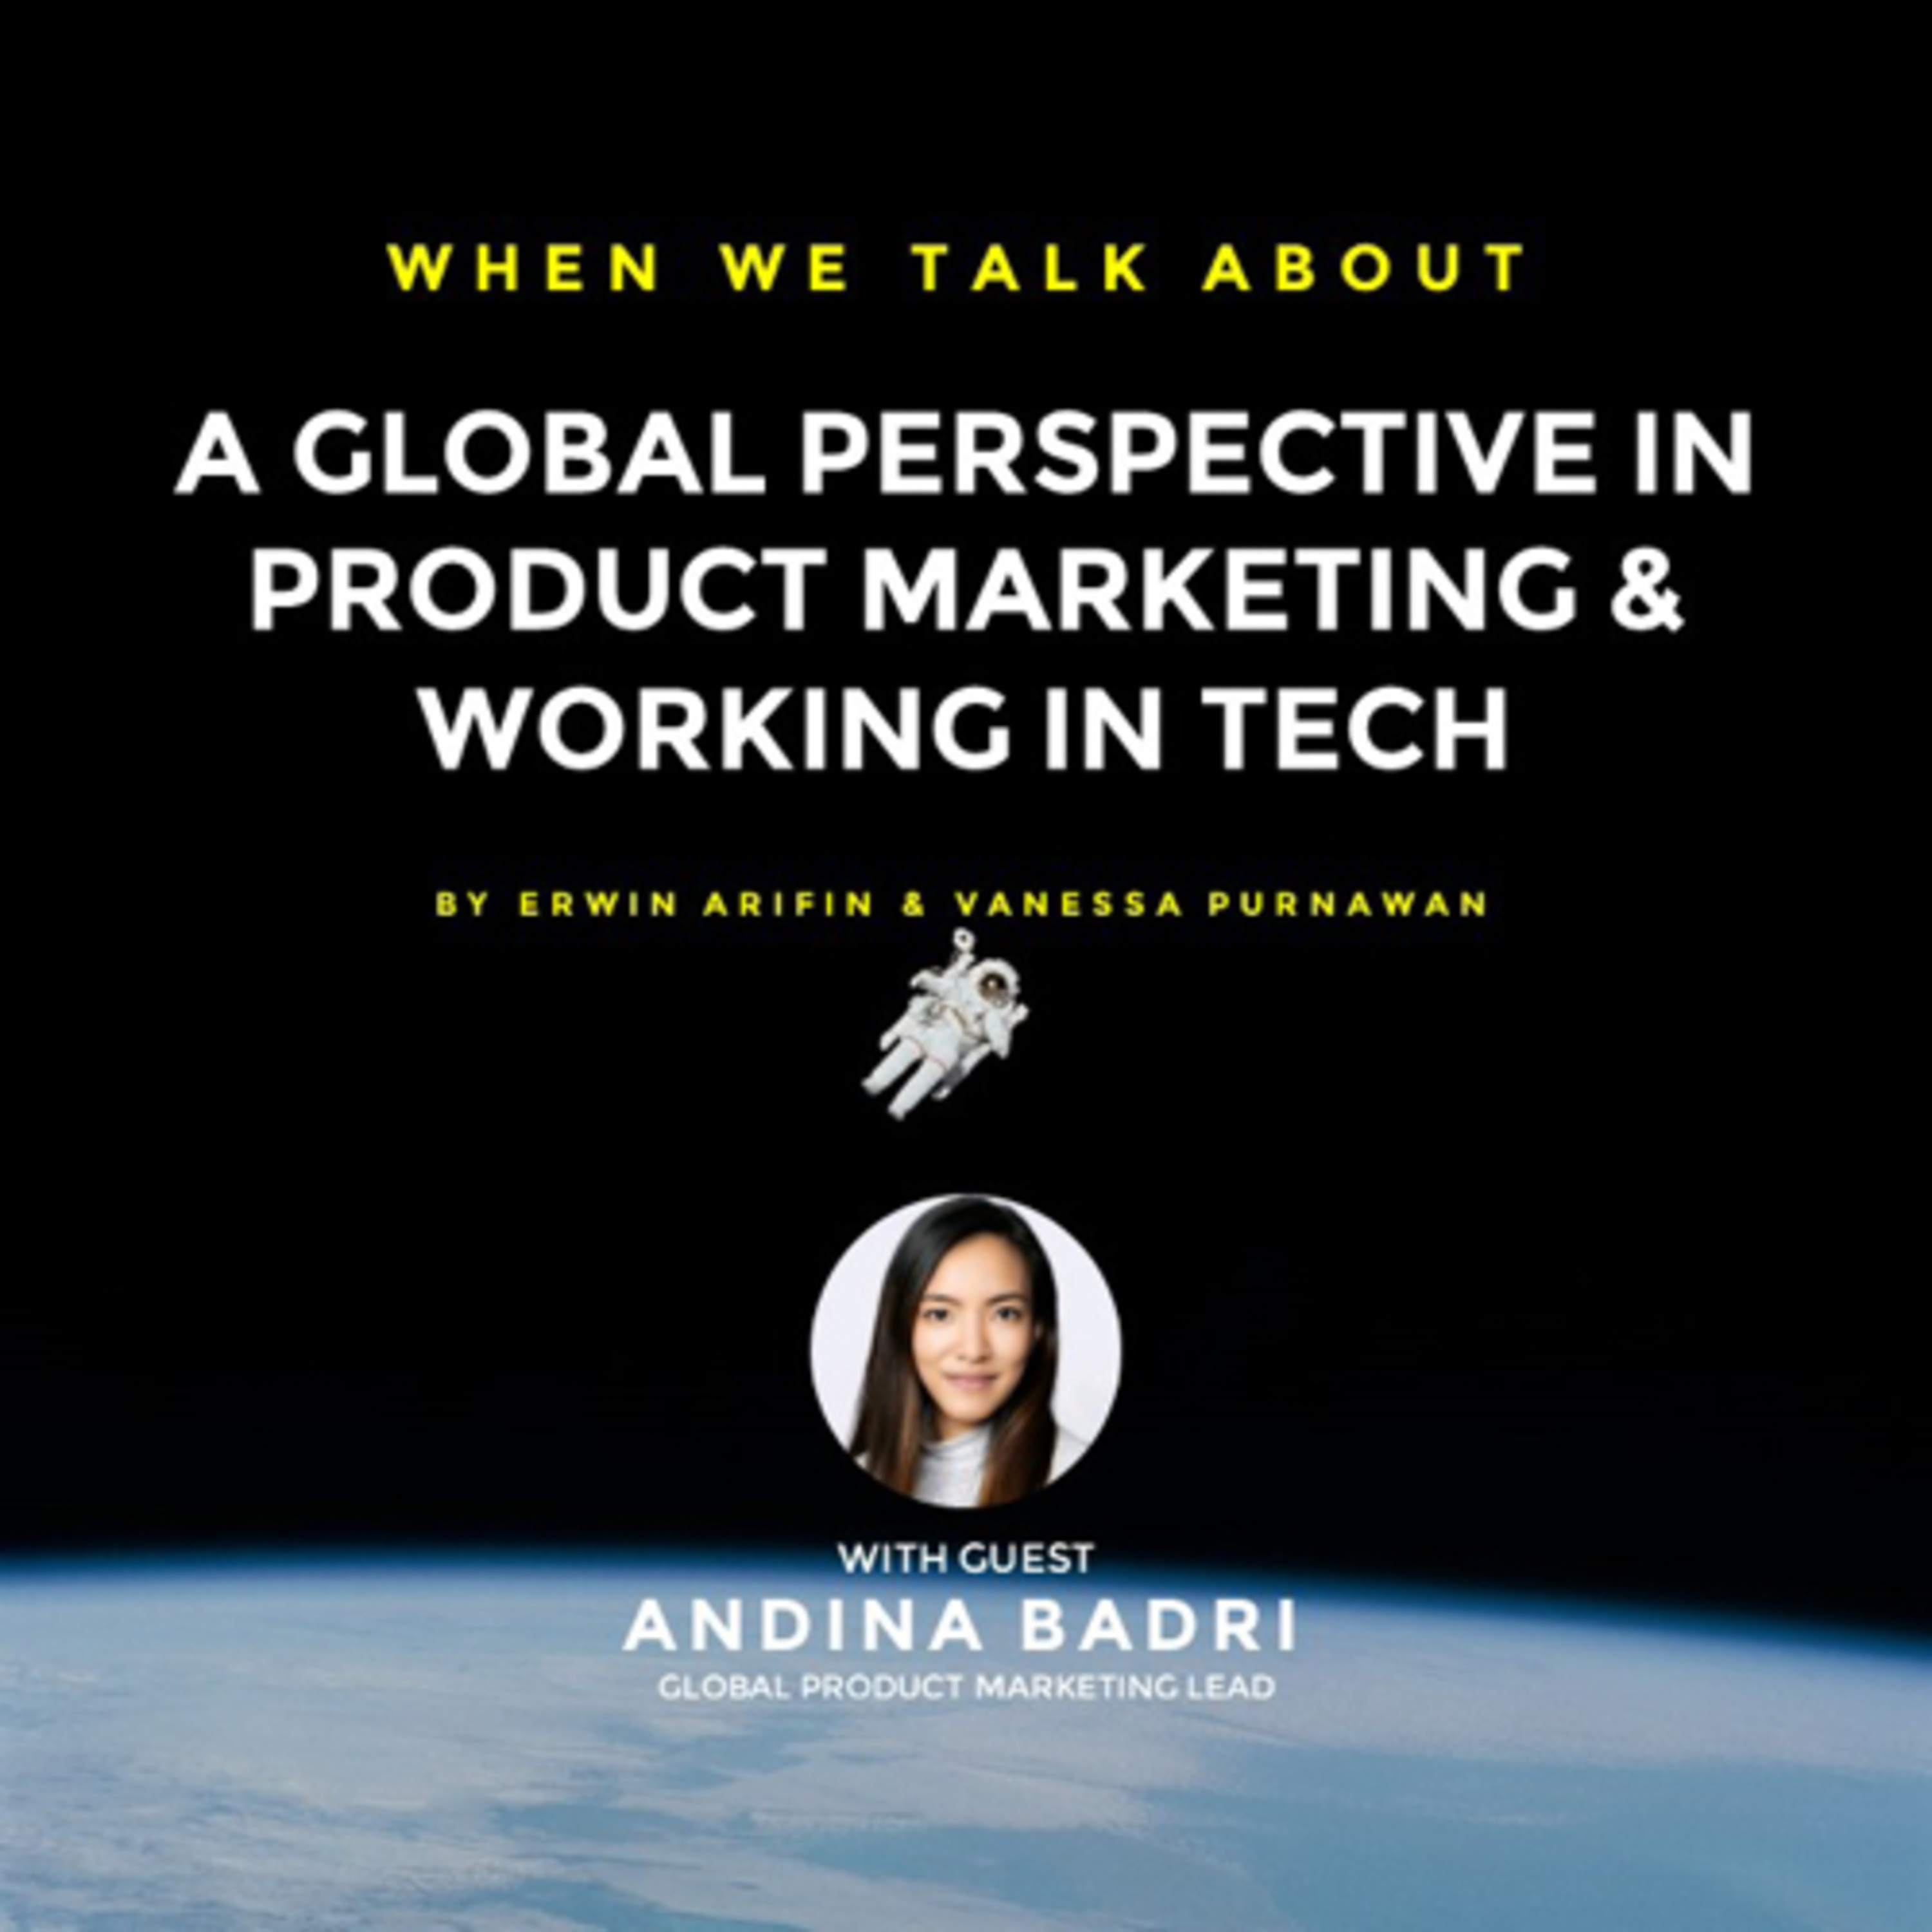 A Global Perspective on Product Marketing and Working in Tech